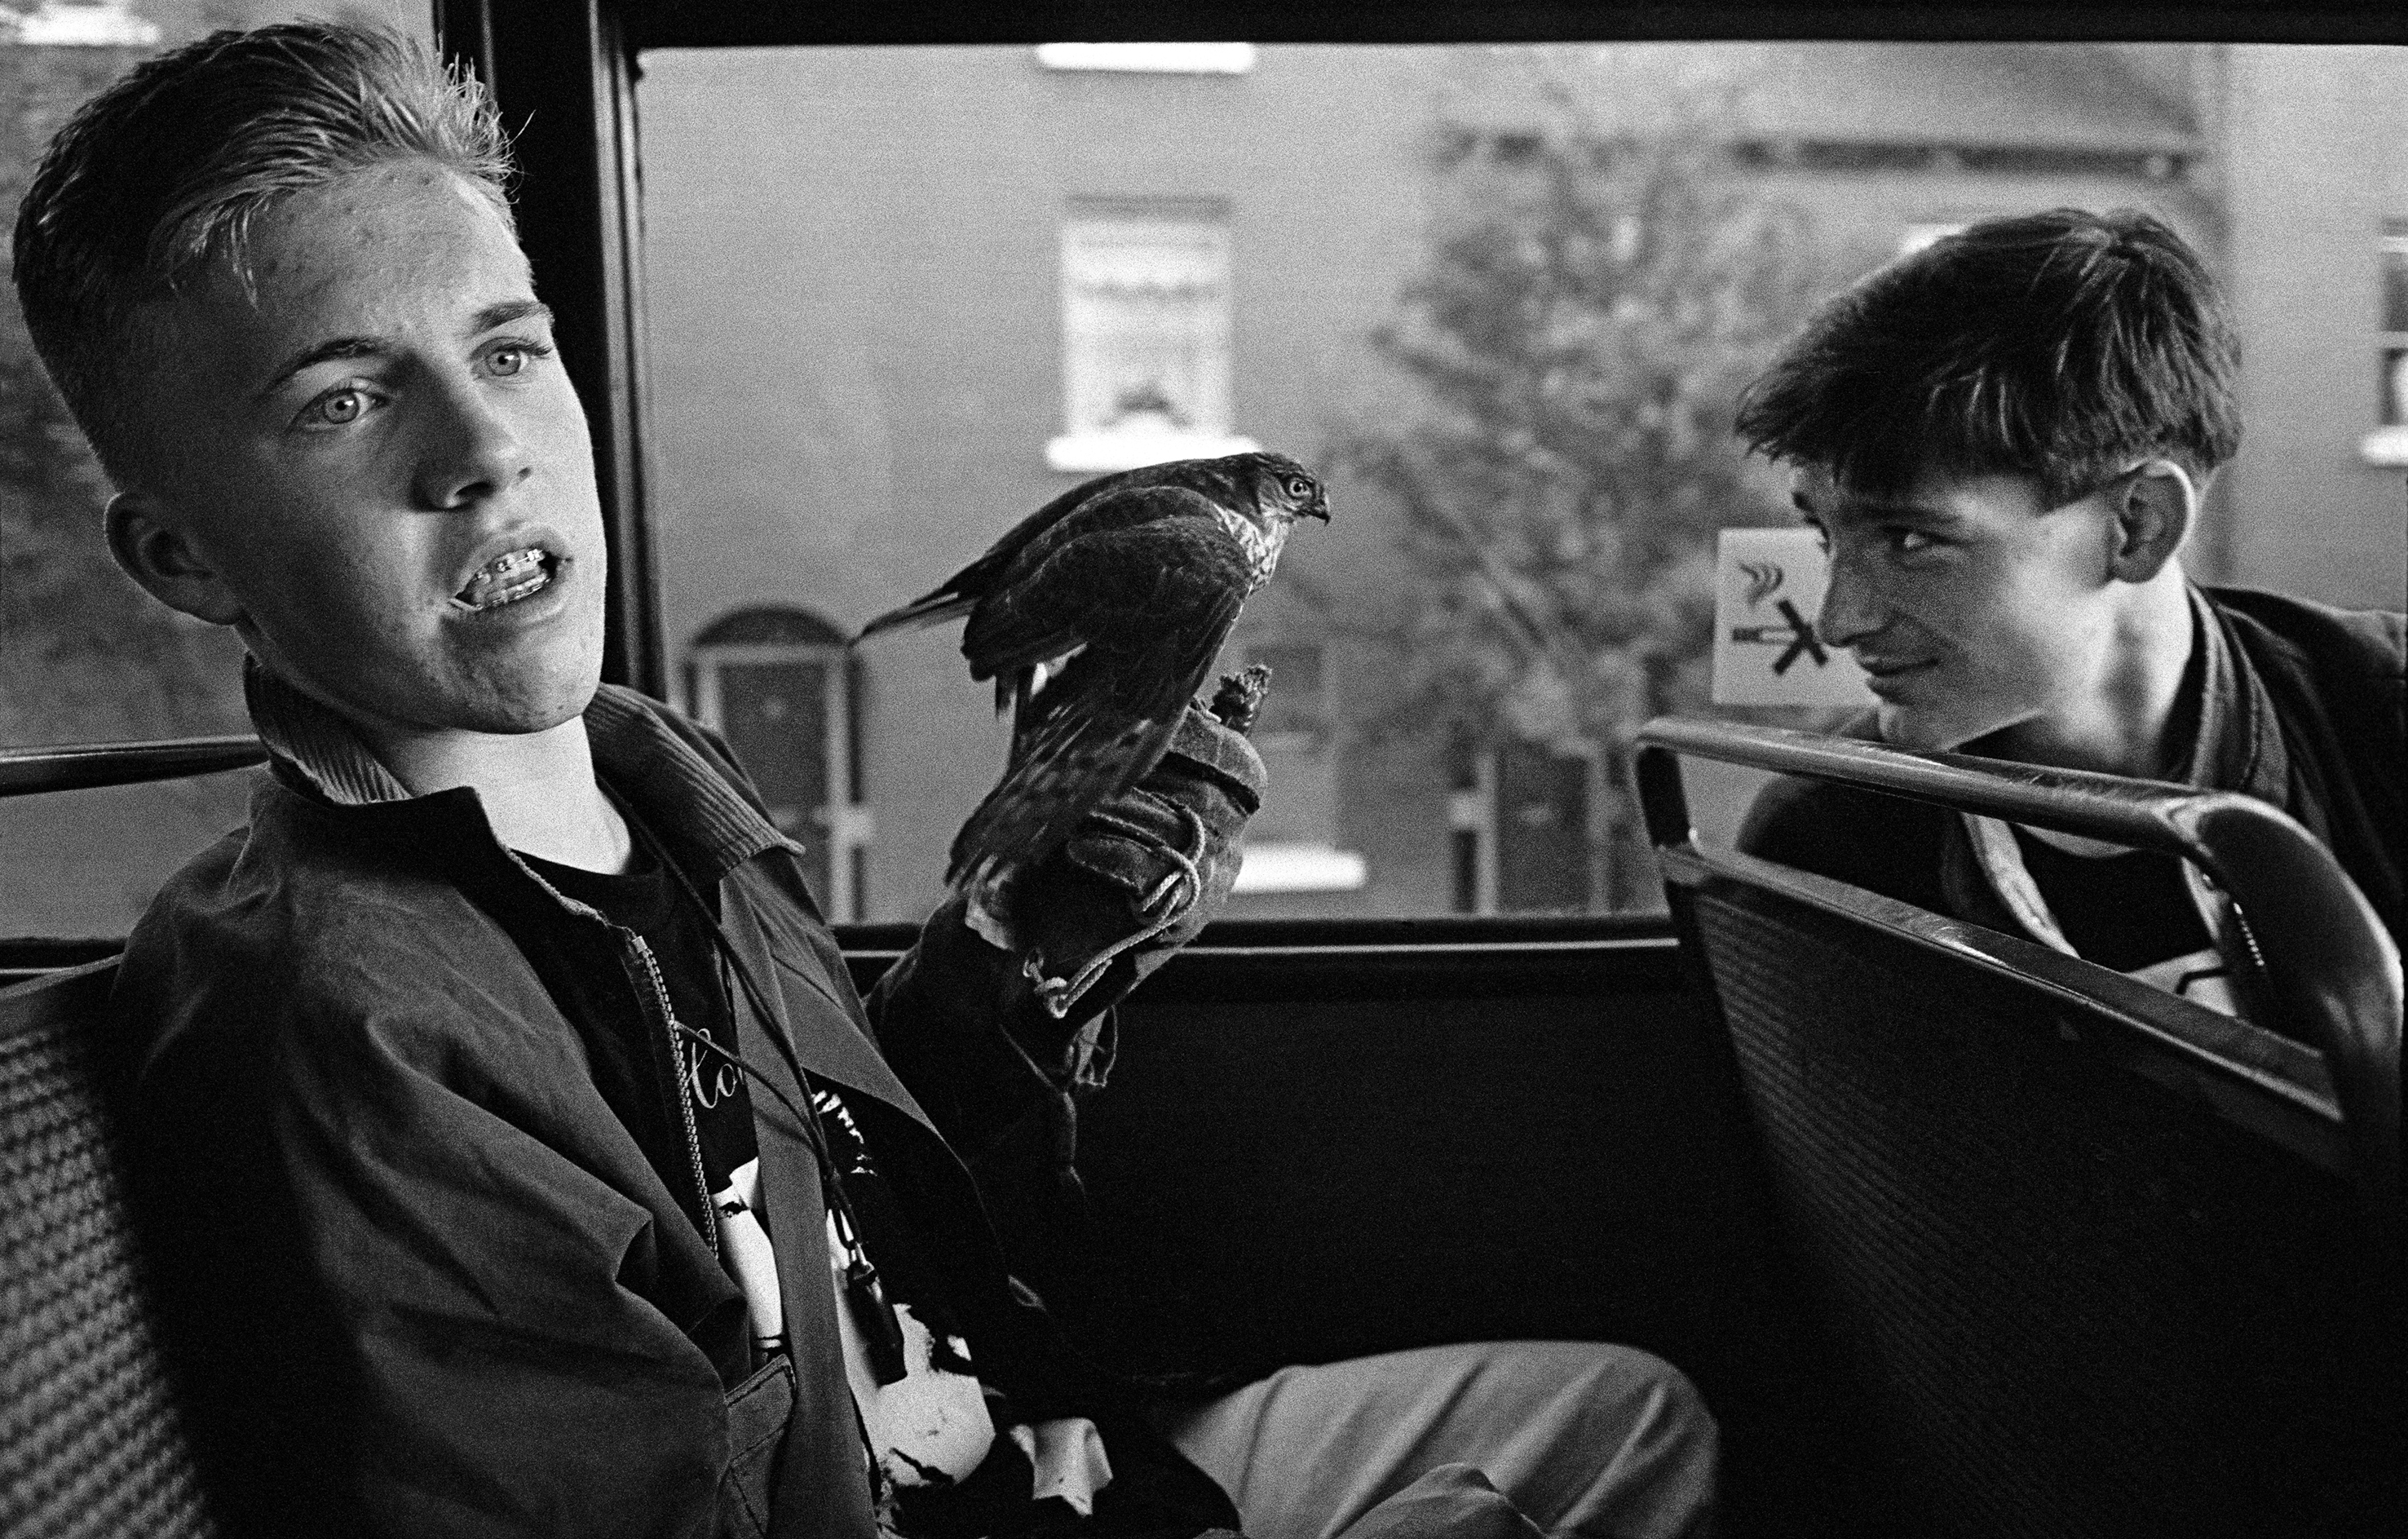 side close-up of 2 boys sitting in a bus, one is holding a bird on his left hand, the other - sitting on the chair in front of him, is looking back at the bird